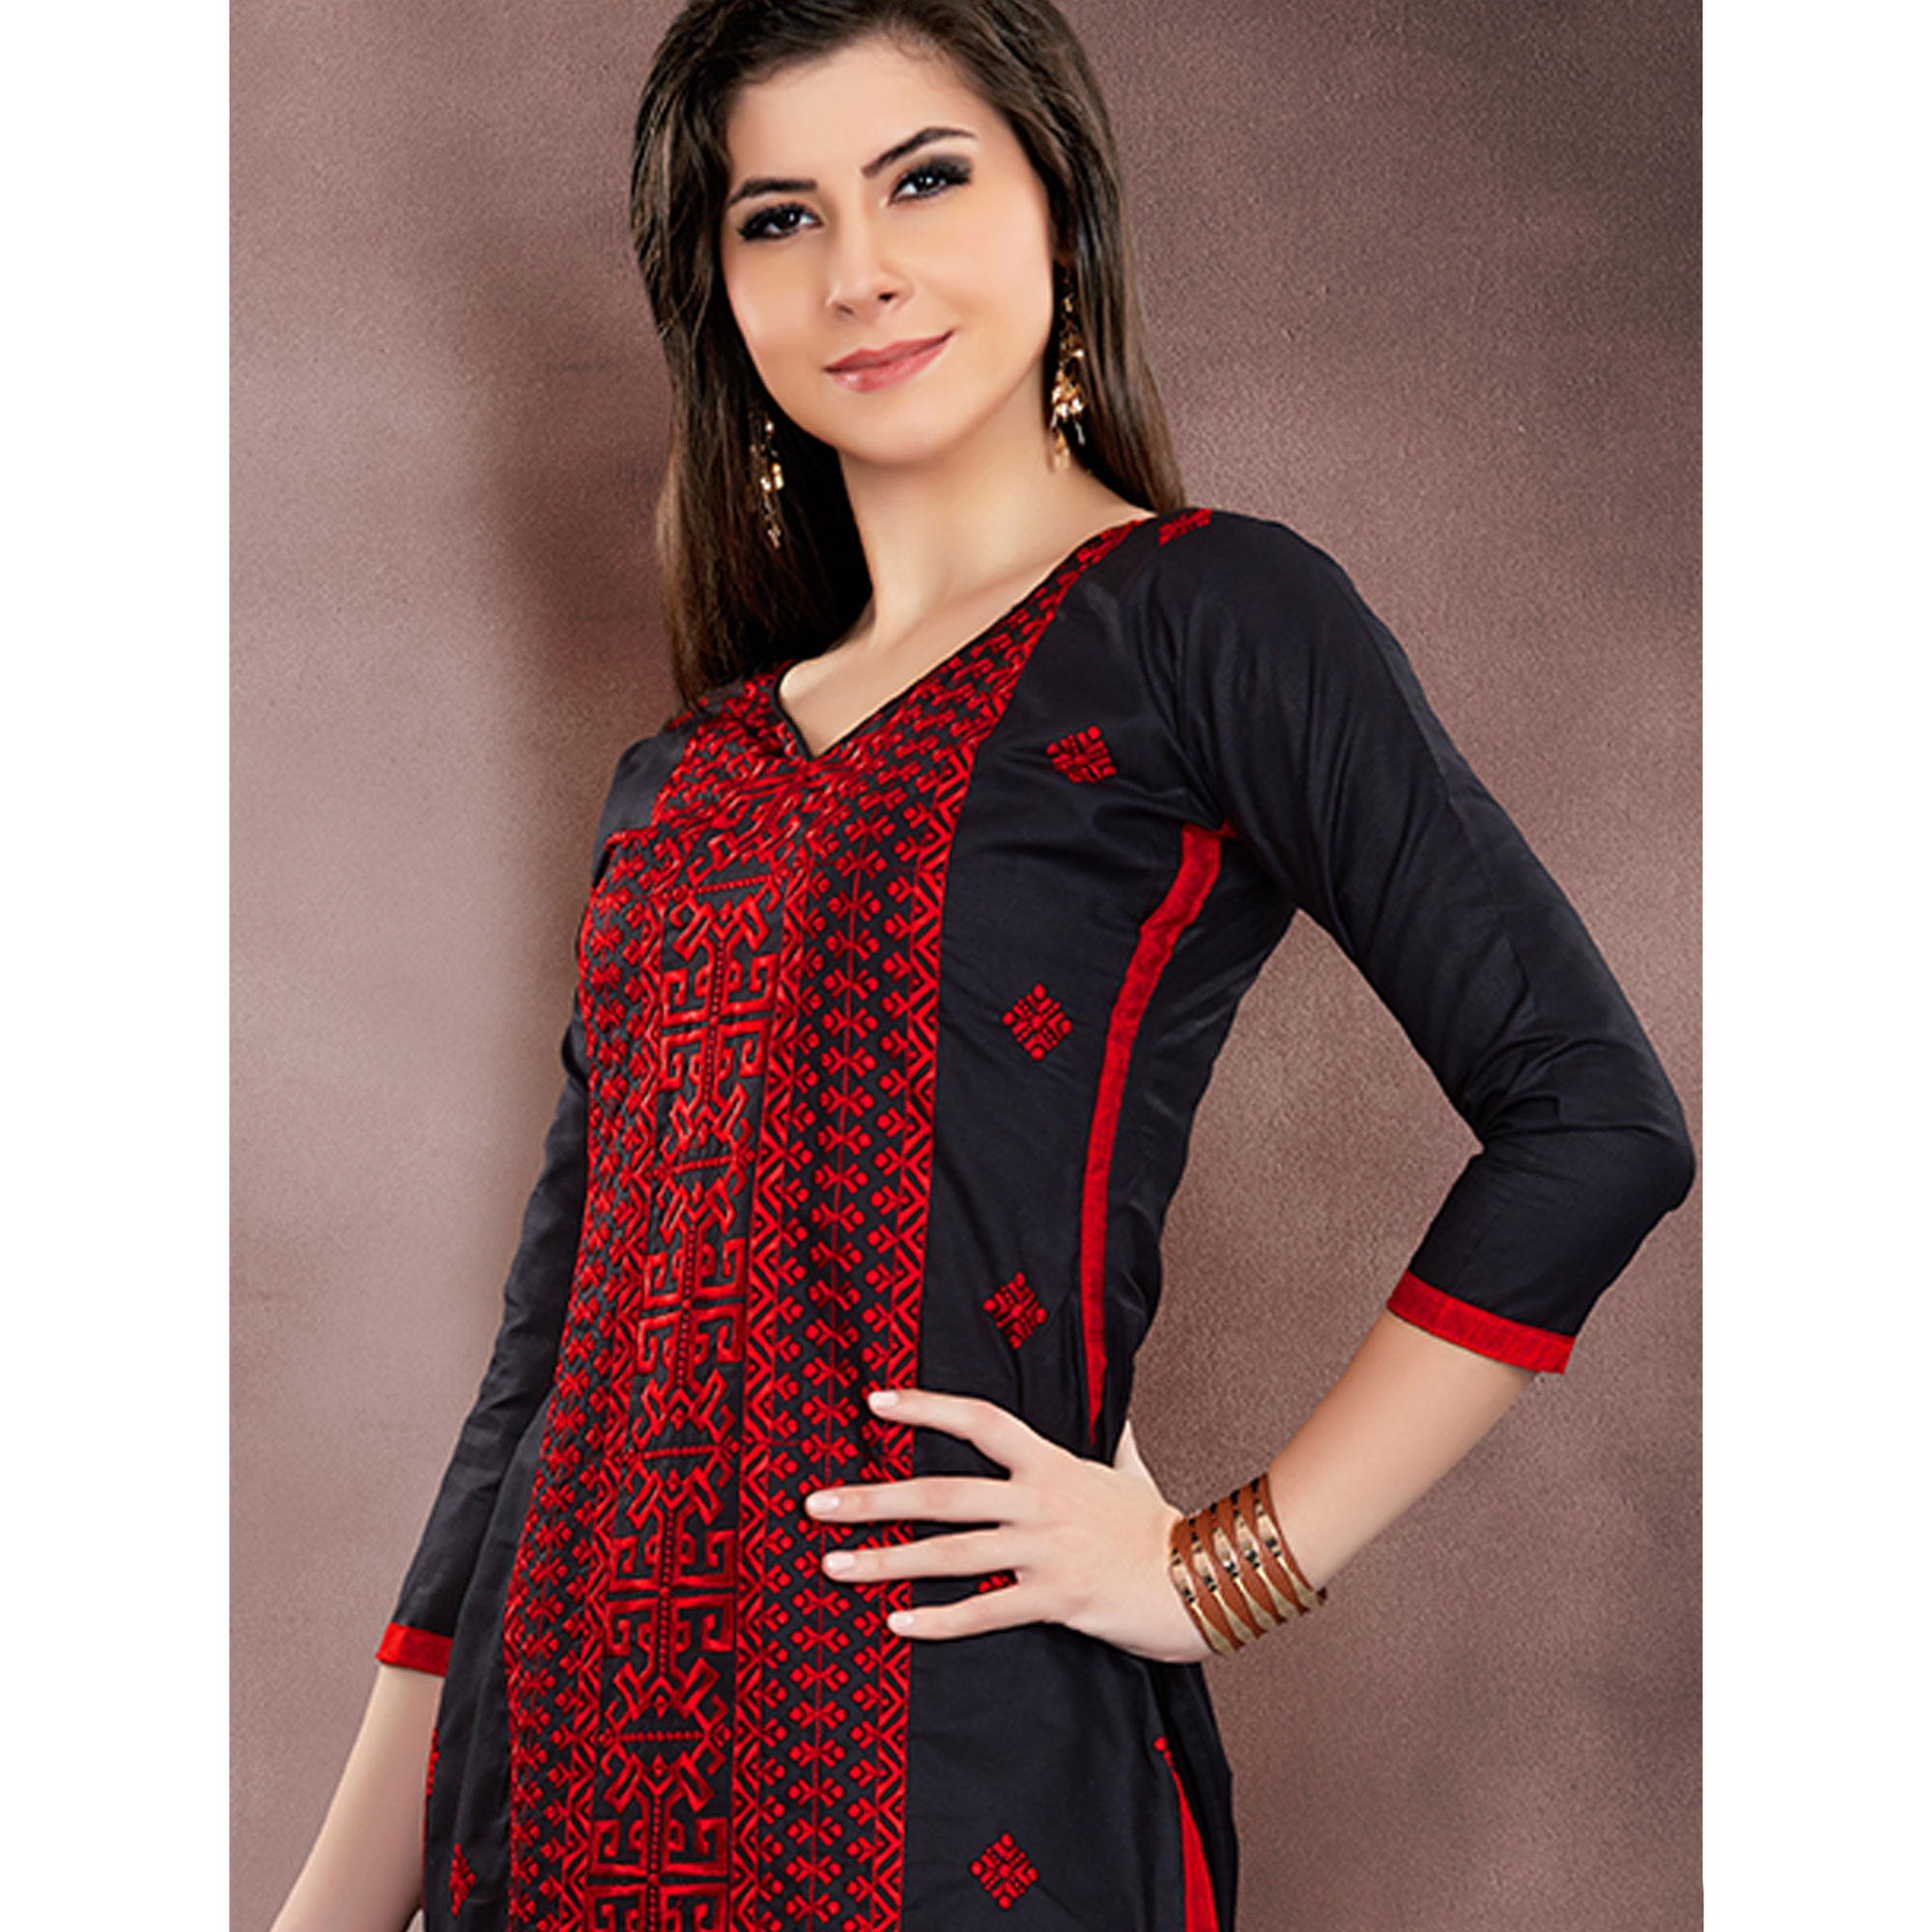 Delightful Black Colored Party Wear Embroidered Modal Chanderi Dress Material